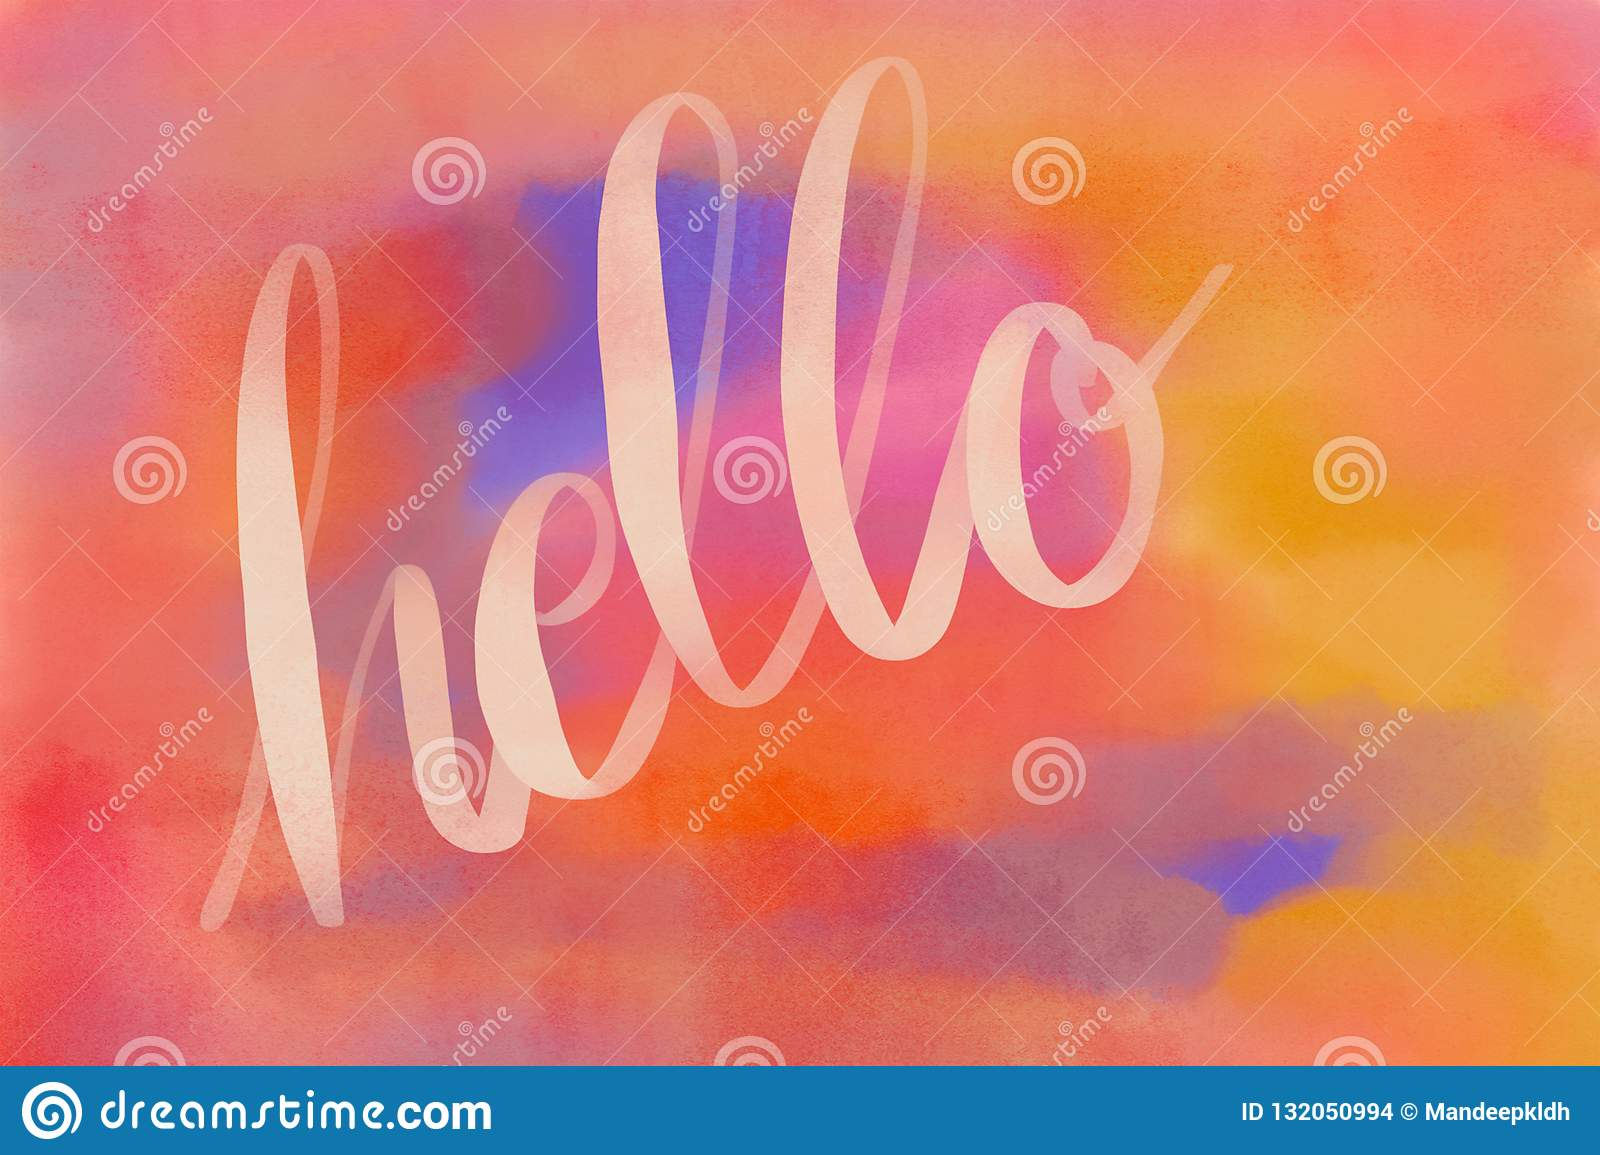 Calligraphy on watercolor theme background. Hand drawn Artwork.